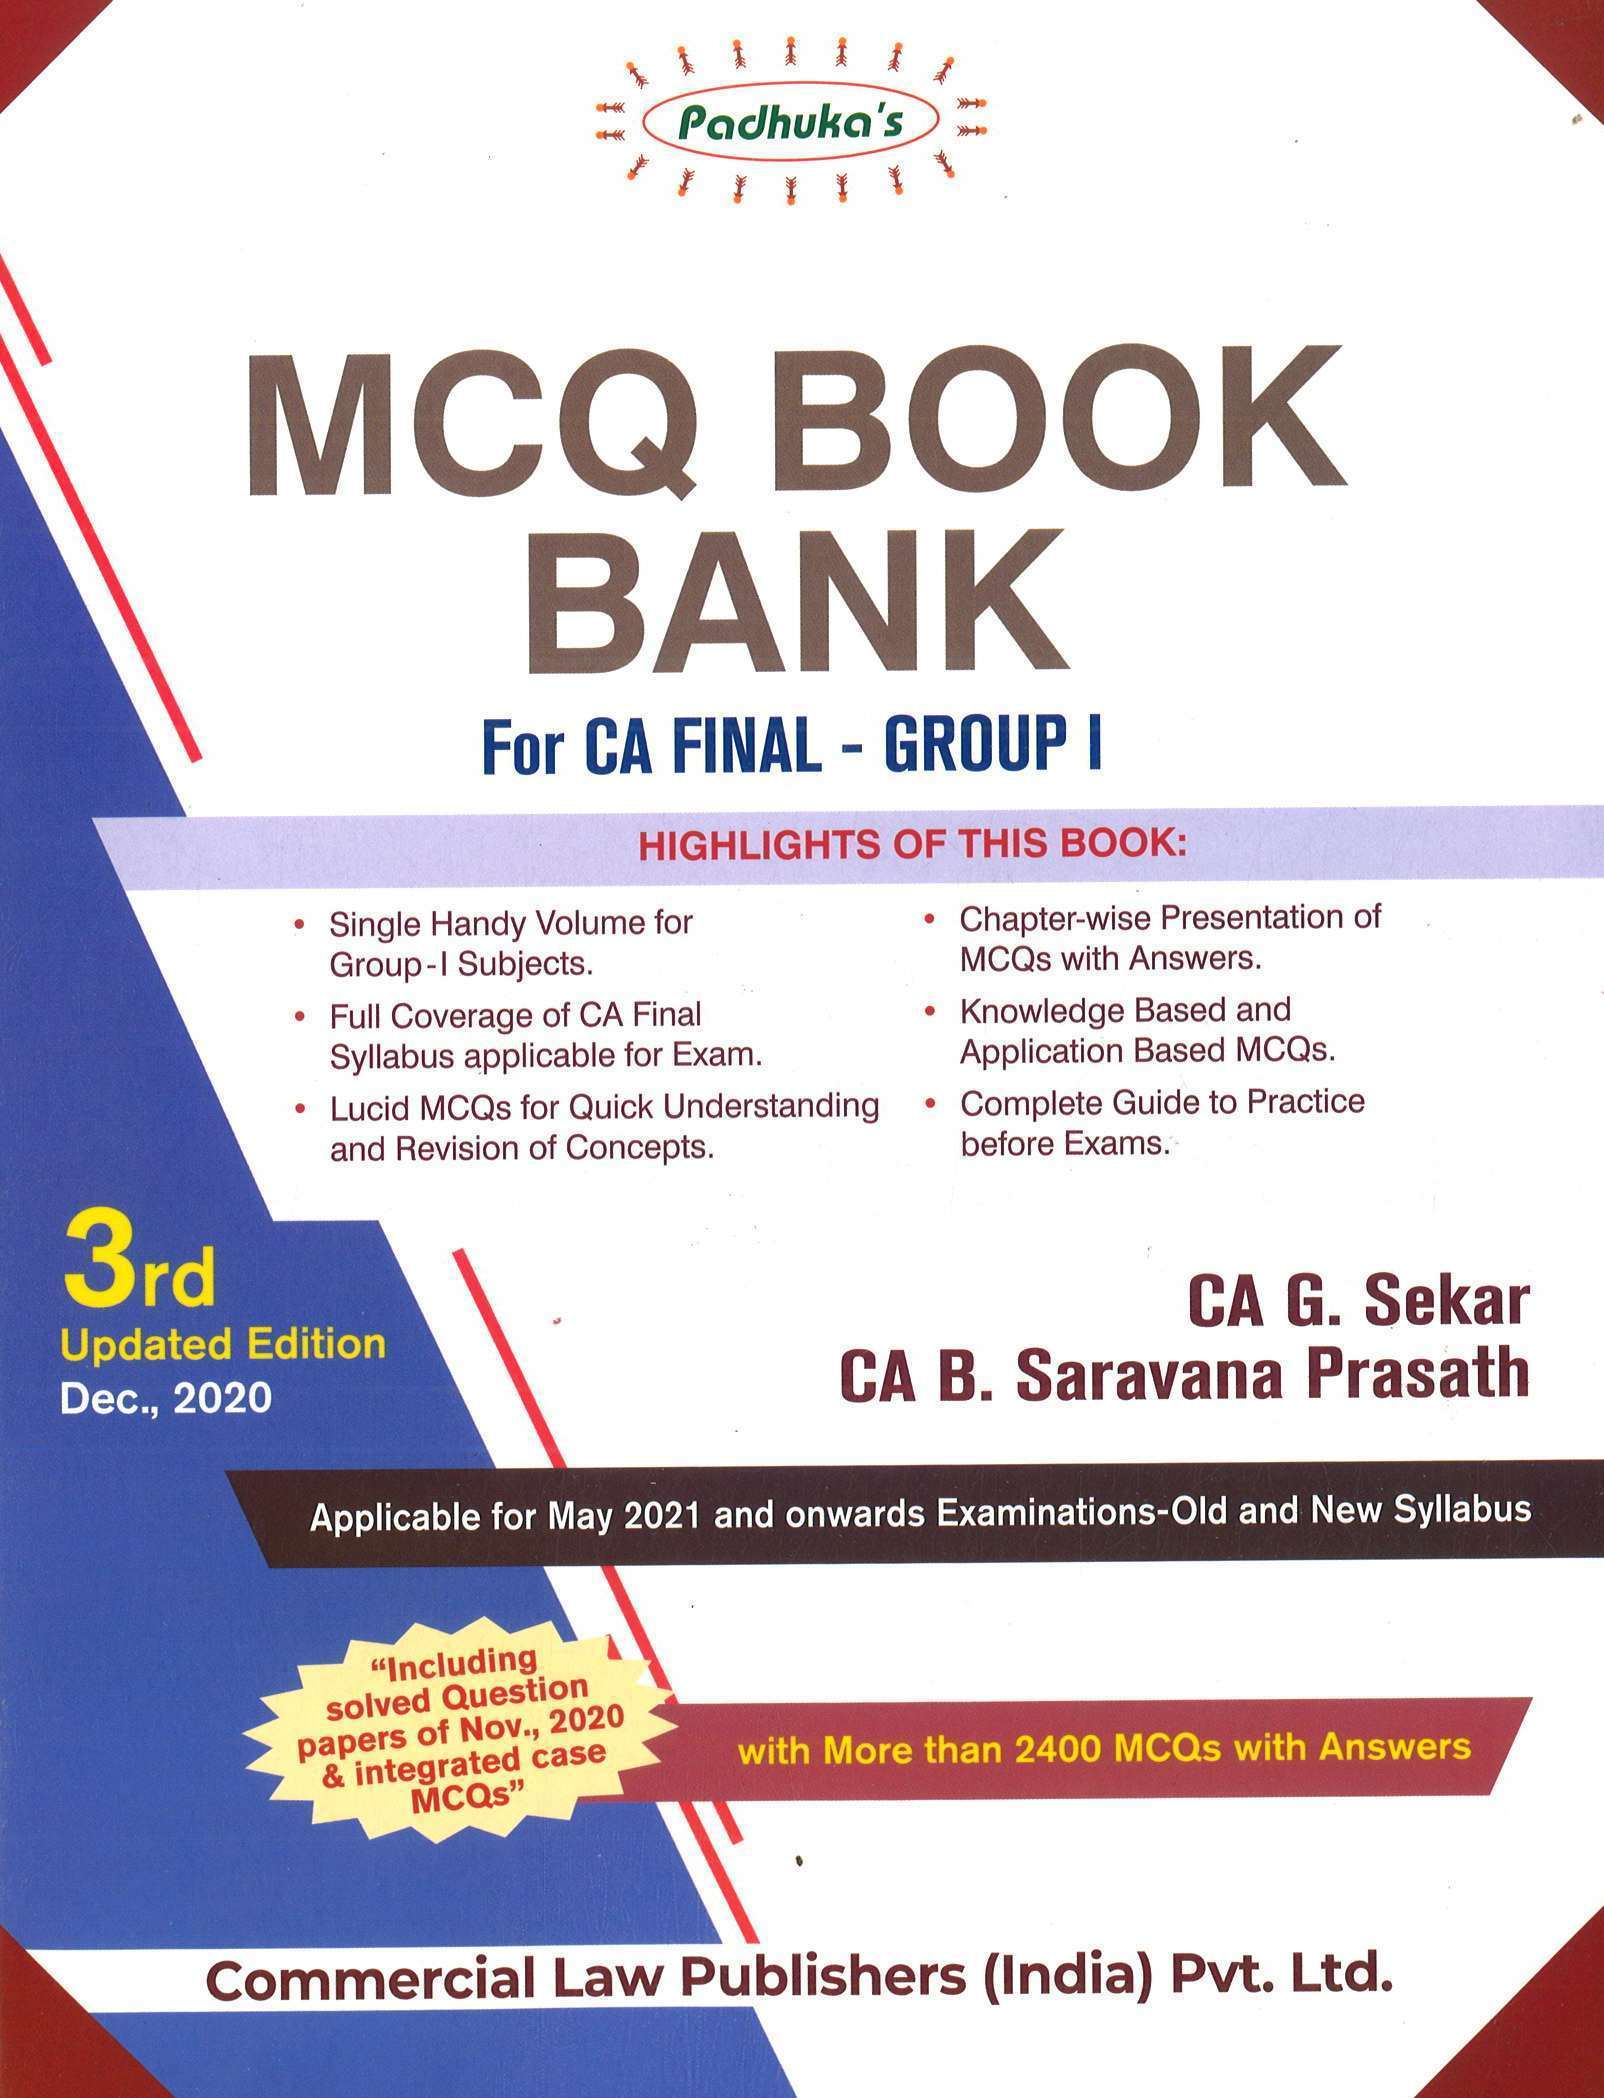 Padhuka MCQ Book Bank (For CA Final – Group I) by CA G. Sekar & CA B. Saravana Prasath (Commercial law publishers) for 2021 Exam